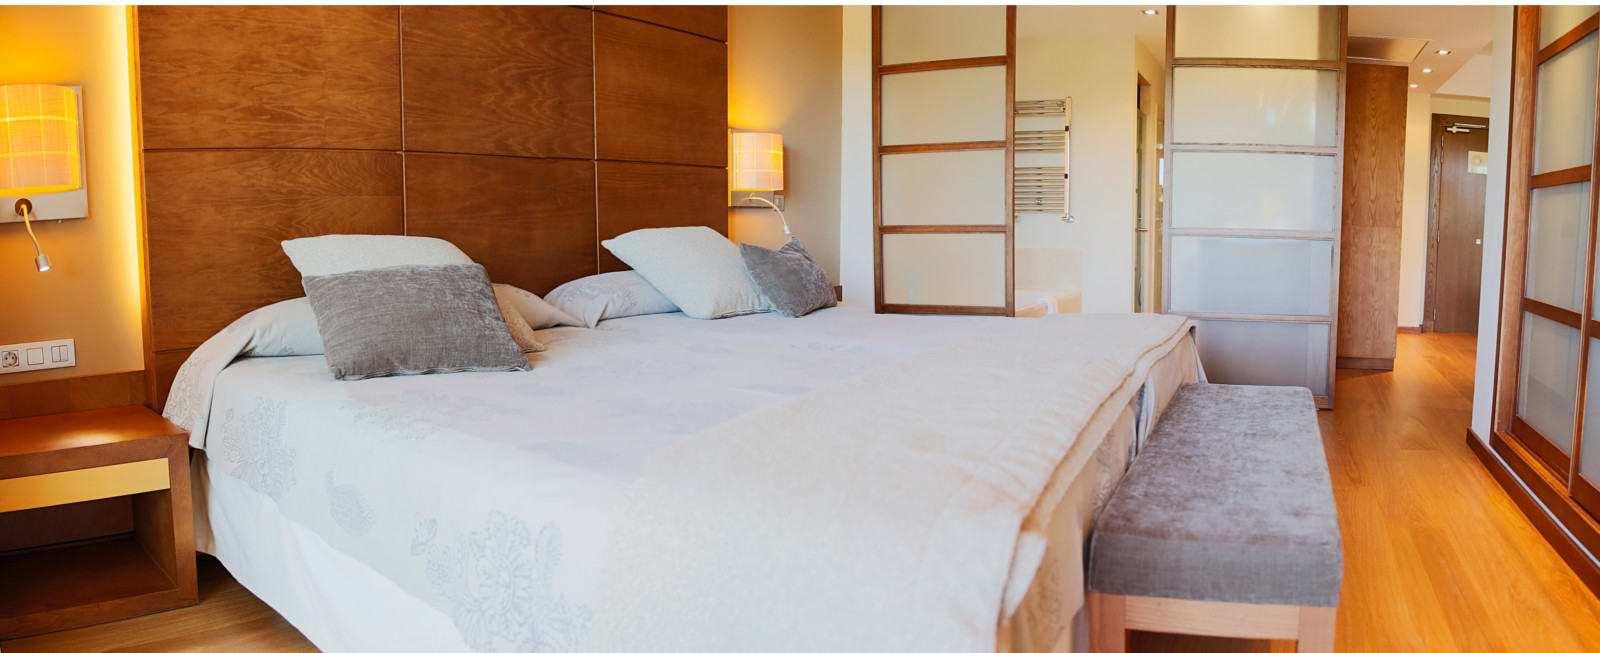 junior-suite-promocion-protur-biomar-gran-hotel-spa.